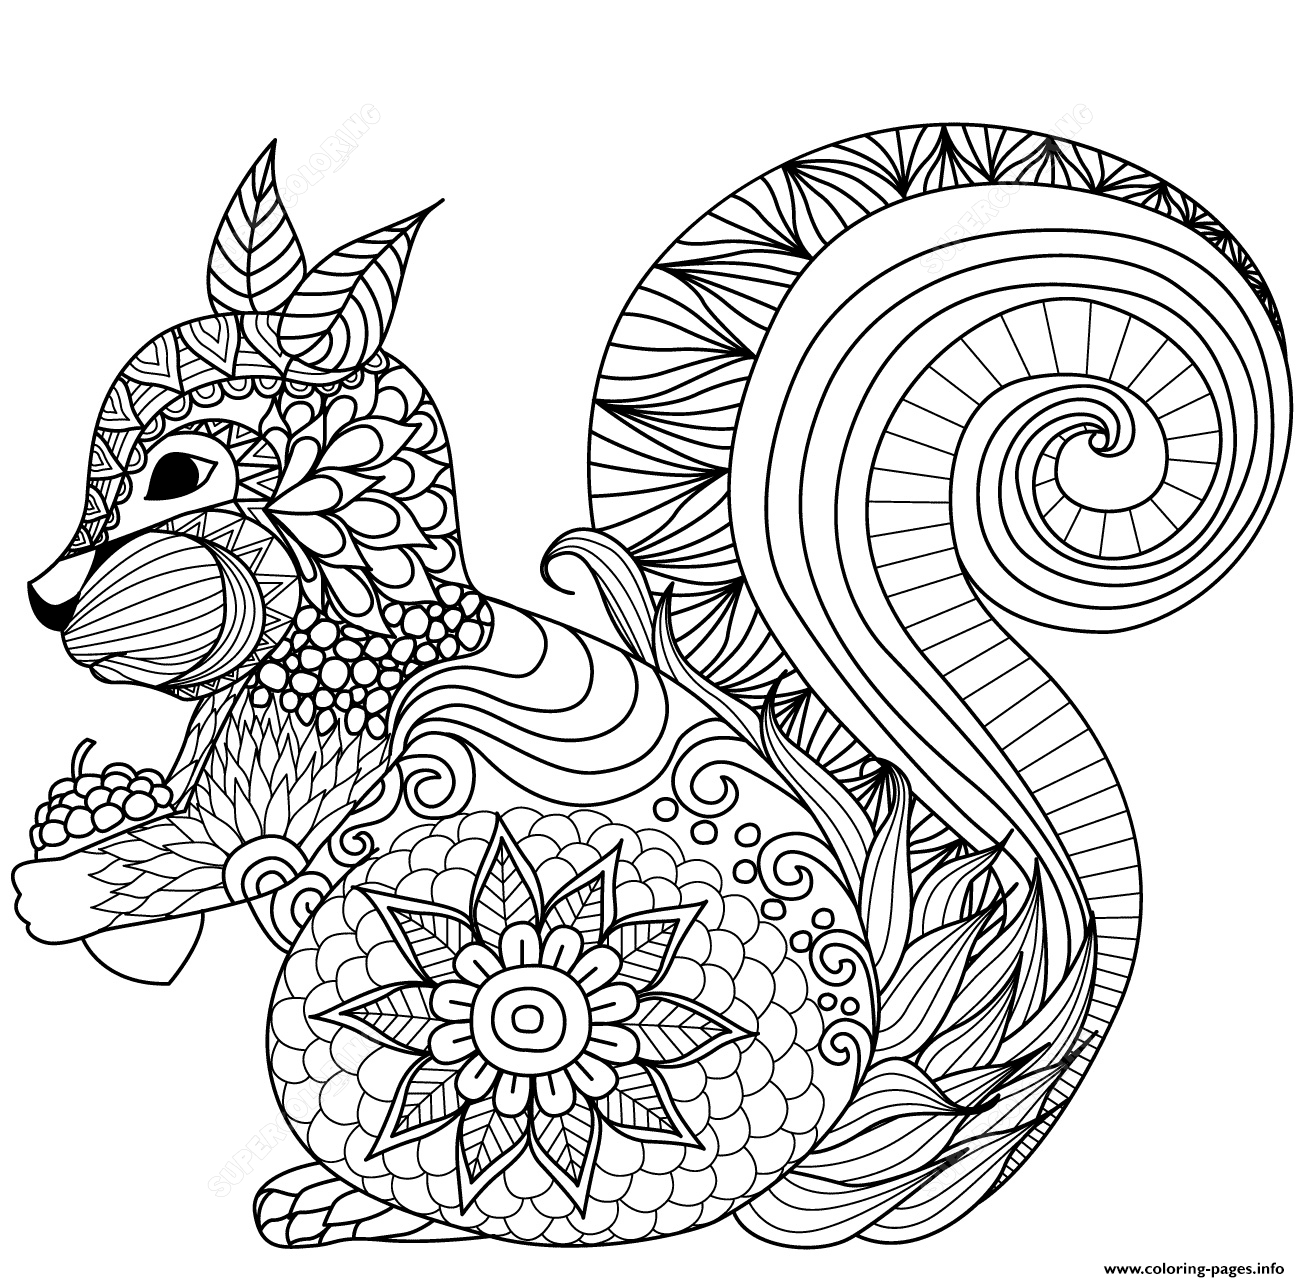 Squirrel Zentangle Adults_1 Coloring Pages Printable